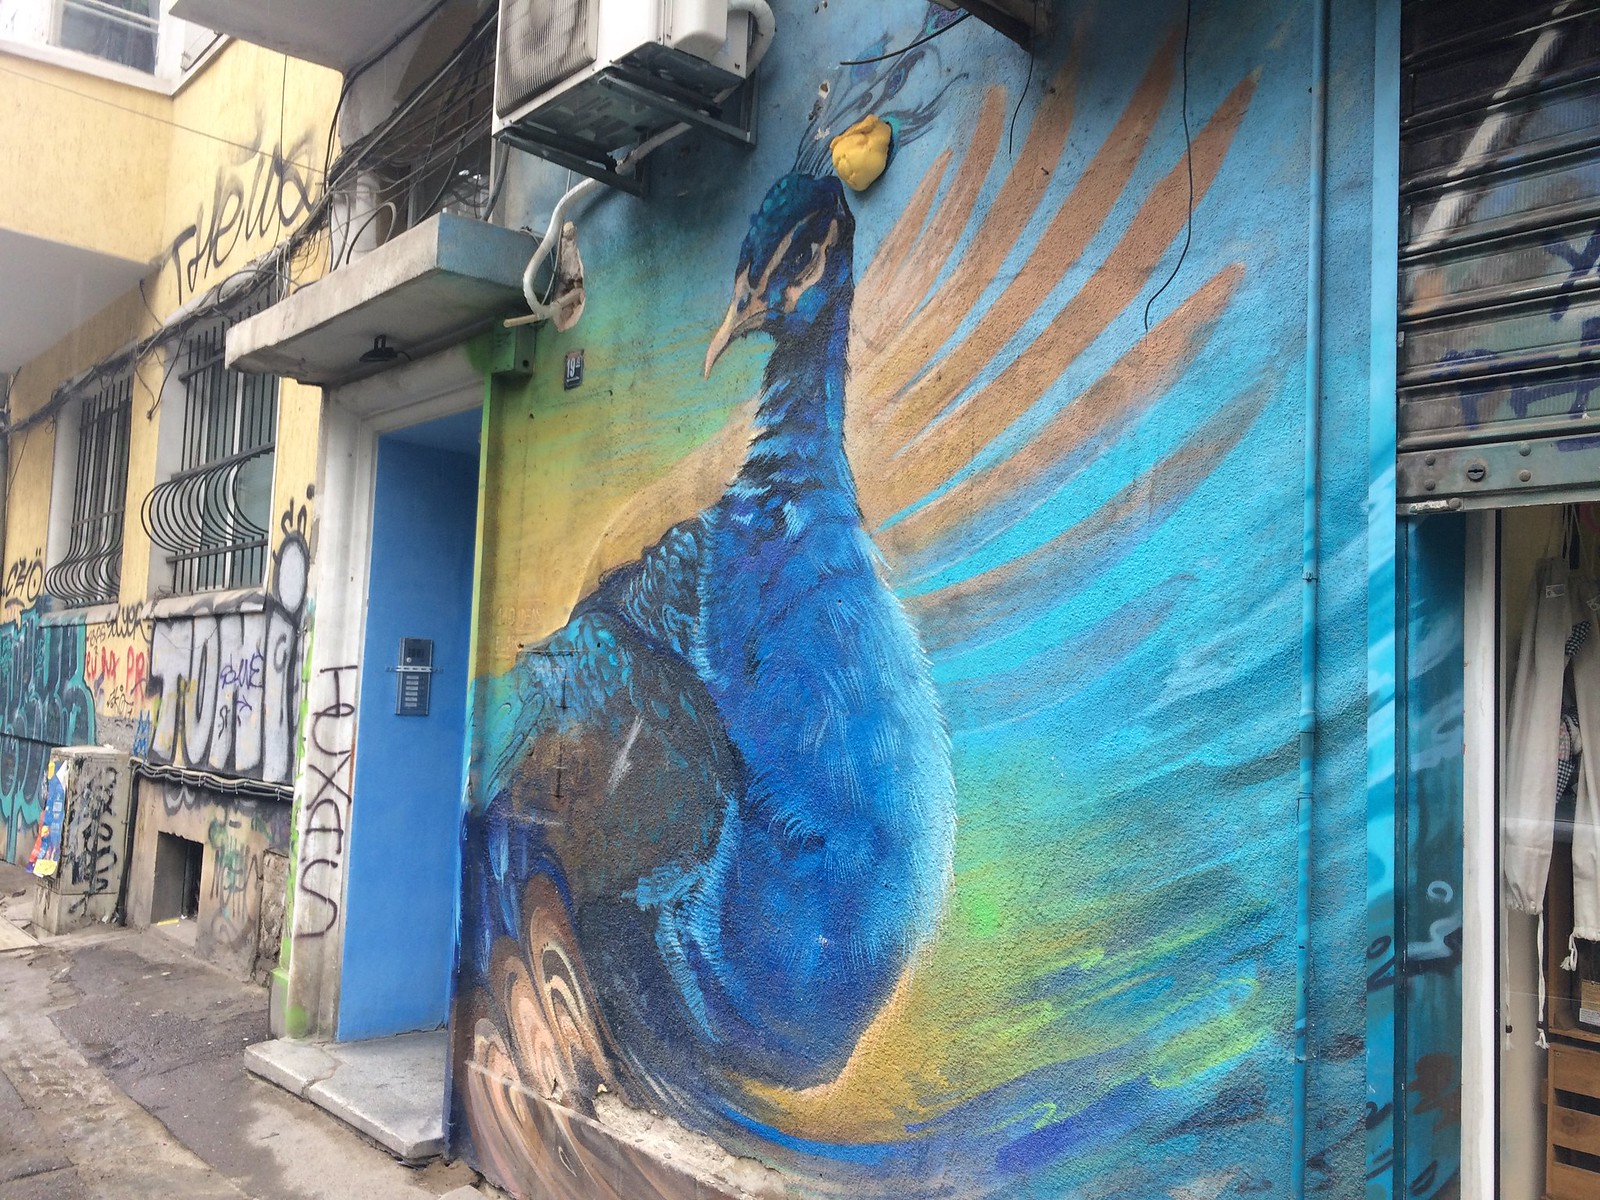 201705 - Balkans - Peacock Graffiti - Sofia - Oborishte - Sofia, May 21, 2017